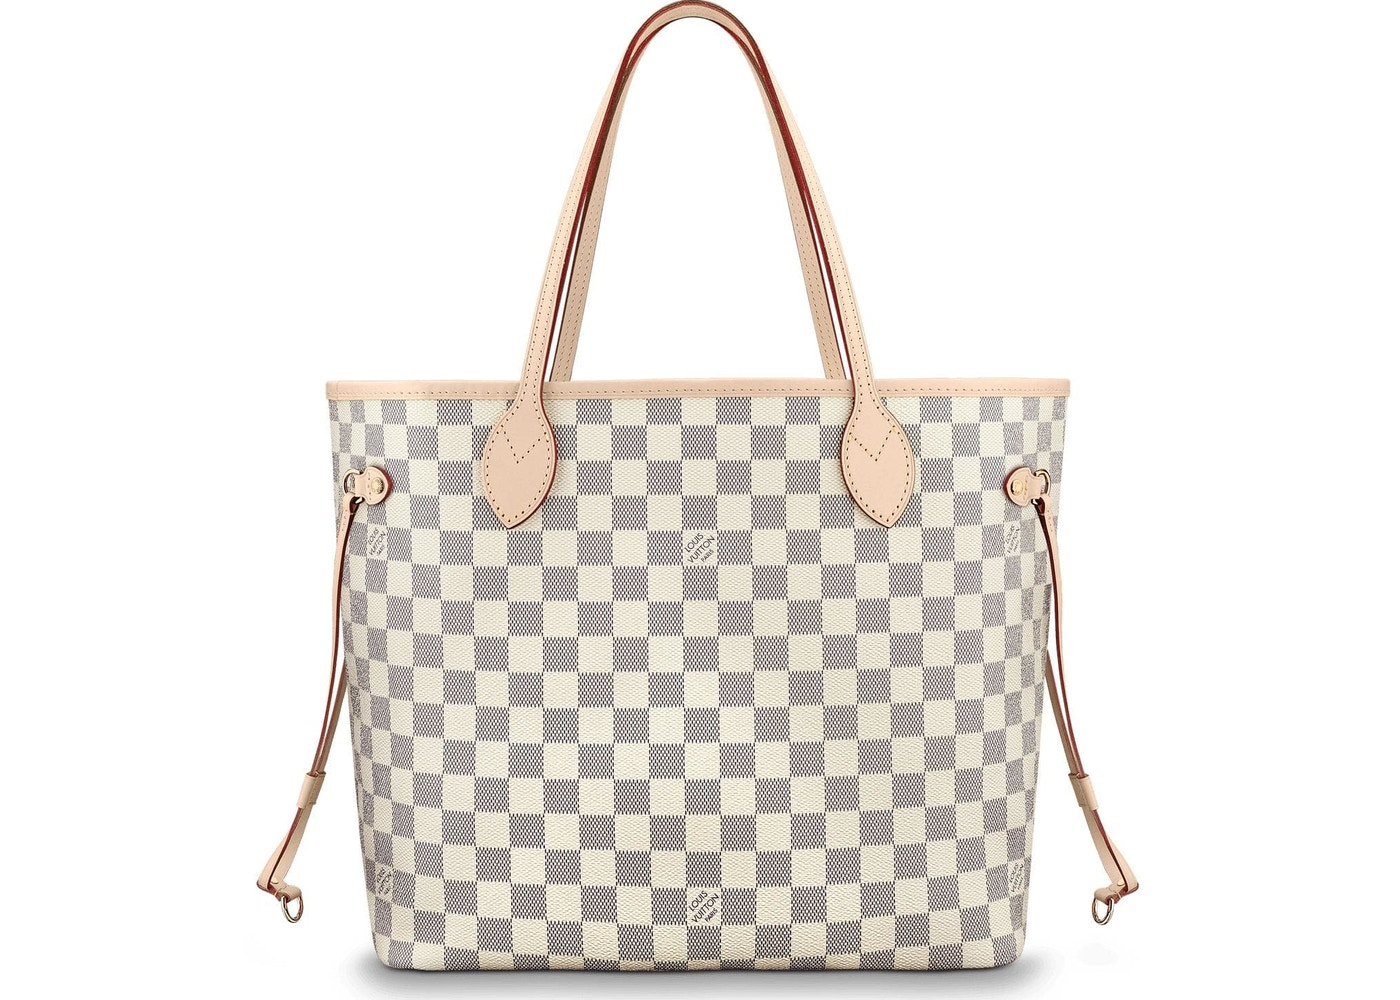 8923e40bfe1a Louis Vuitton Neverfull Damier Azur MM Ivorie Grey. Damier Azur MM Ivorie  Grey